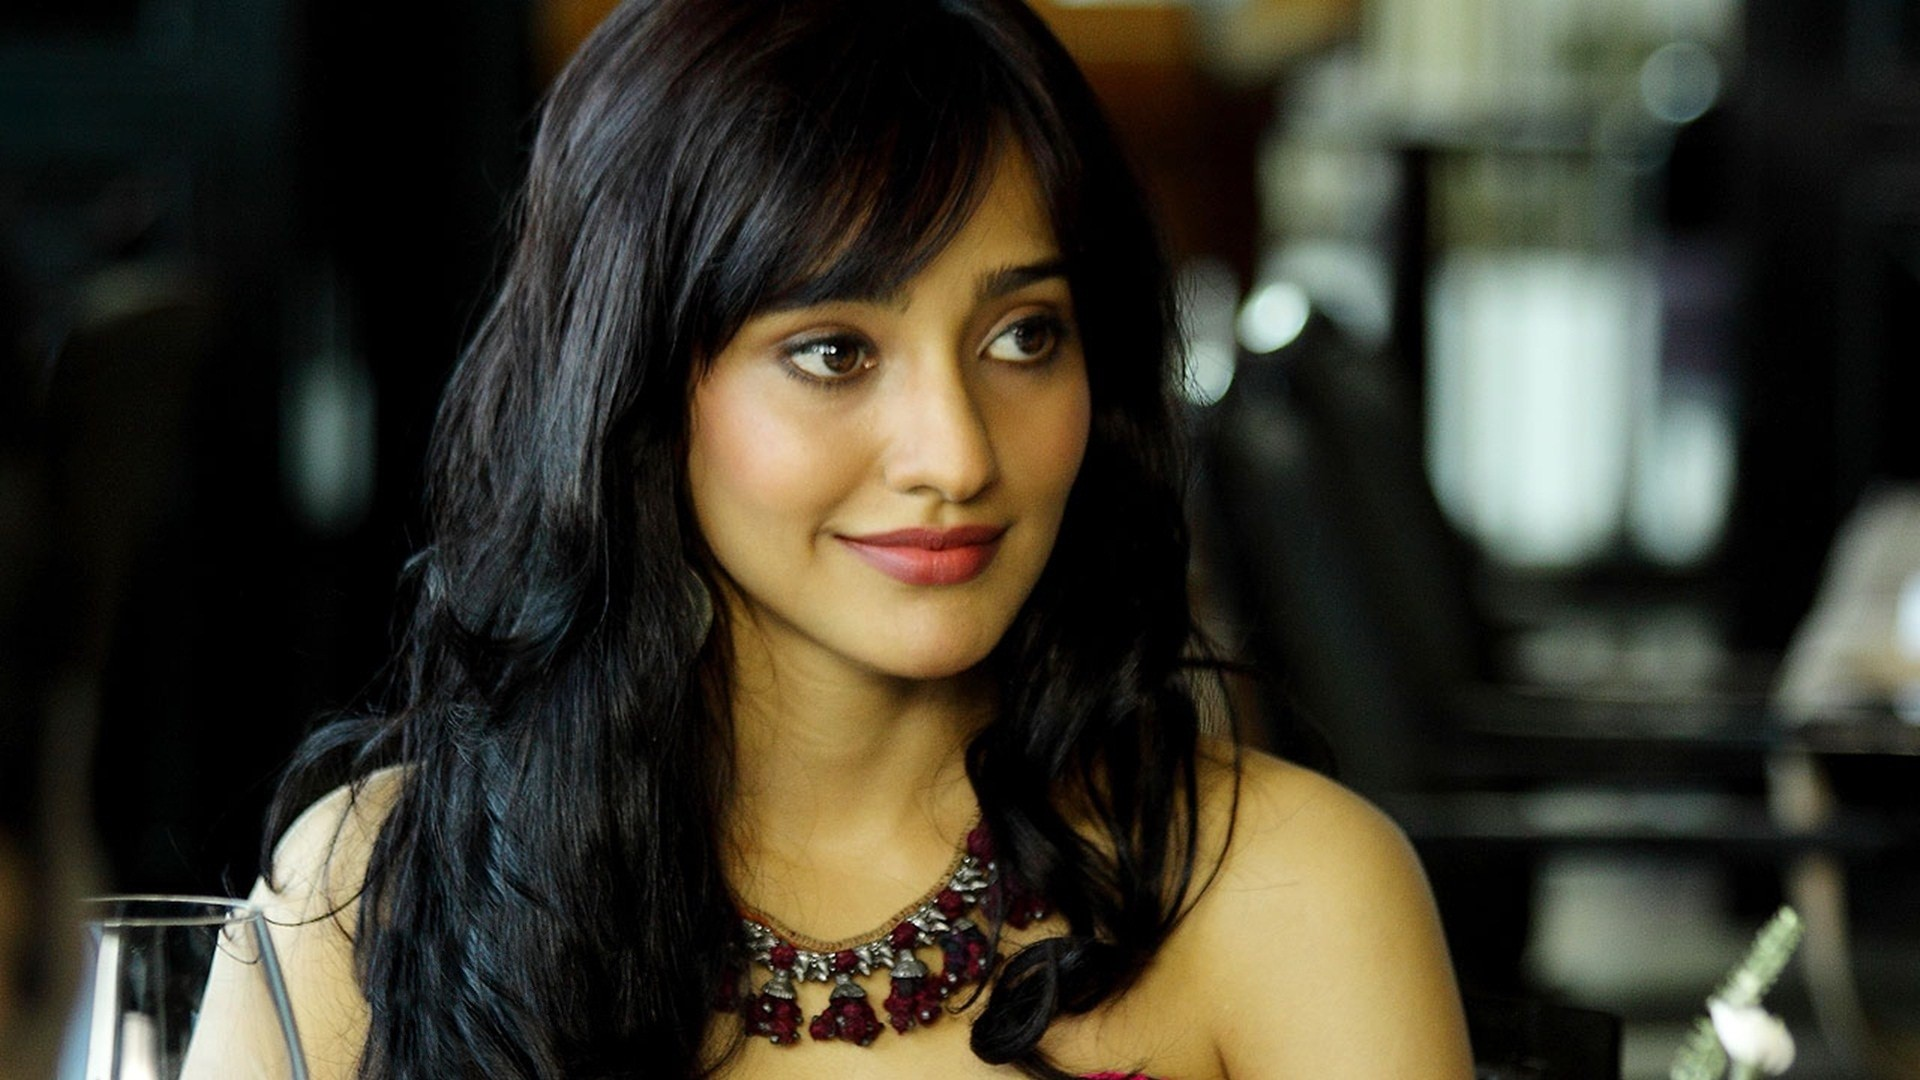 1920x1080 Neha Sharma HD Wallpaper 55354